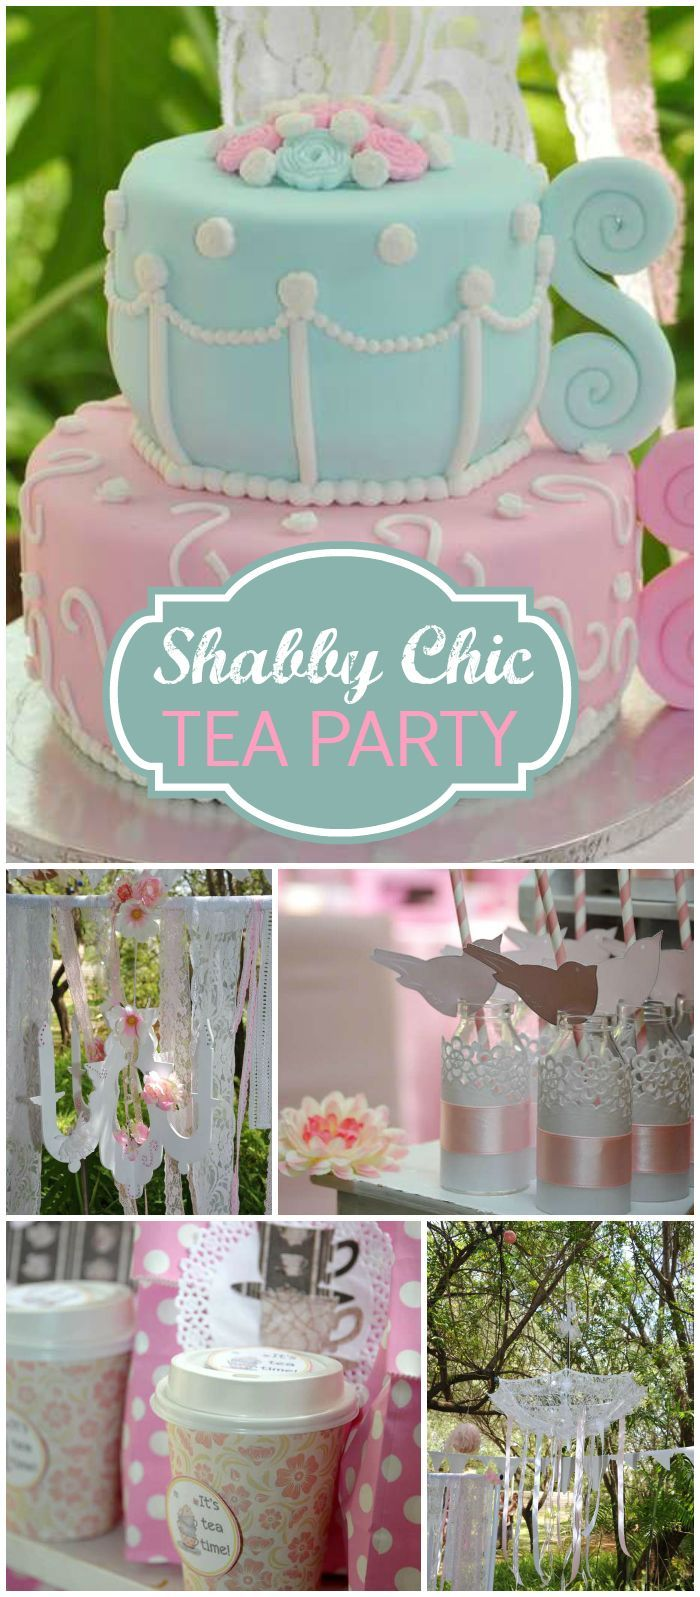 78 images about little girls tea party ideas on pinterest. Black Bedroom Furniture Sets. Home Design Ideas